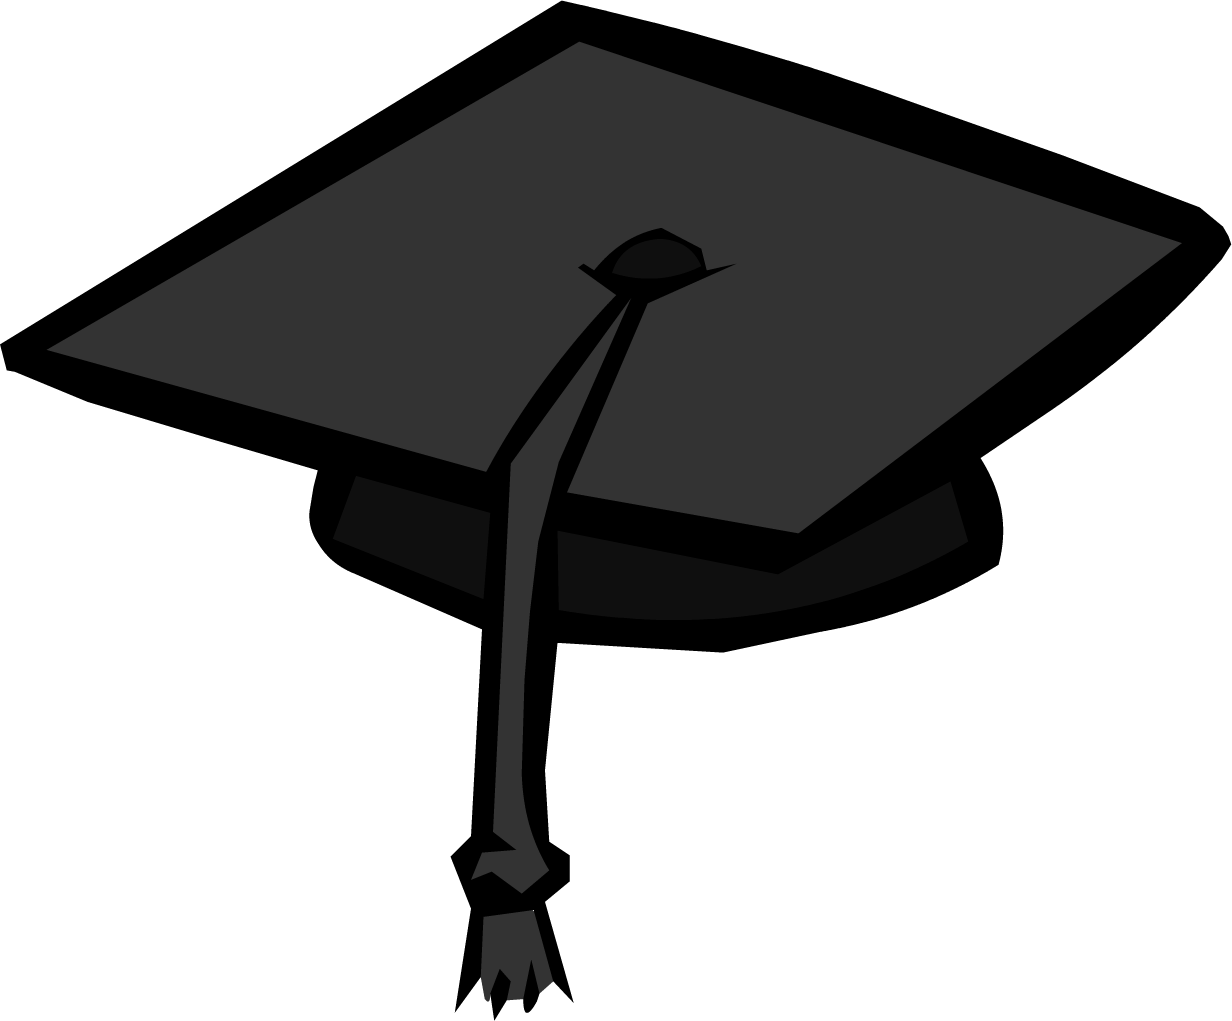 Hats clipart education. Degree hat graduation cap